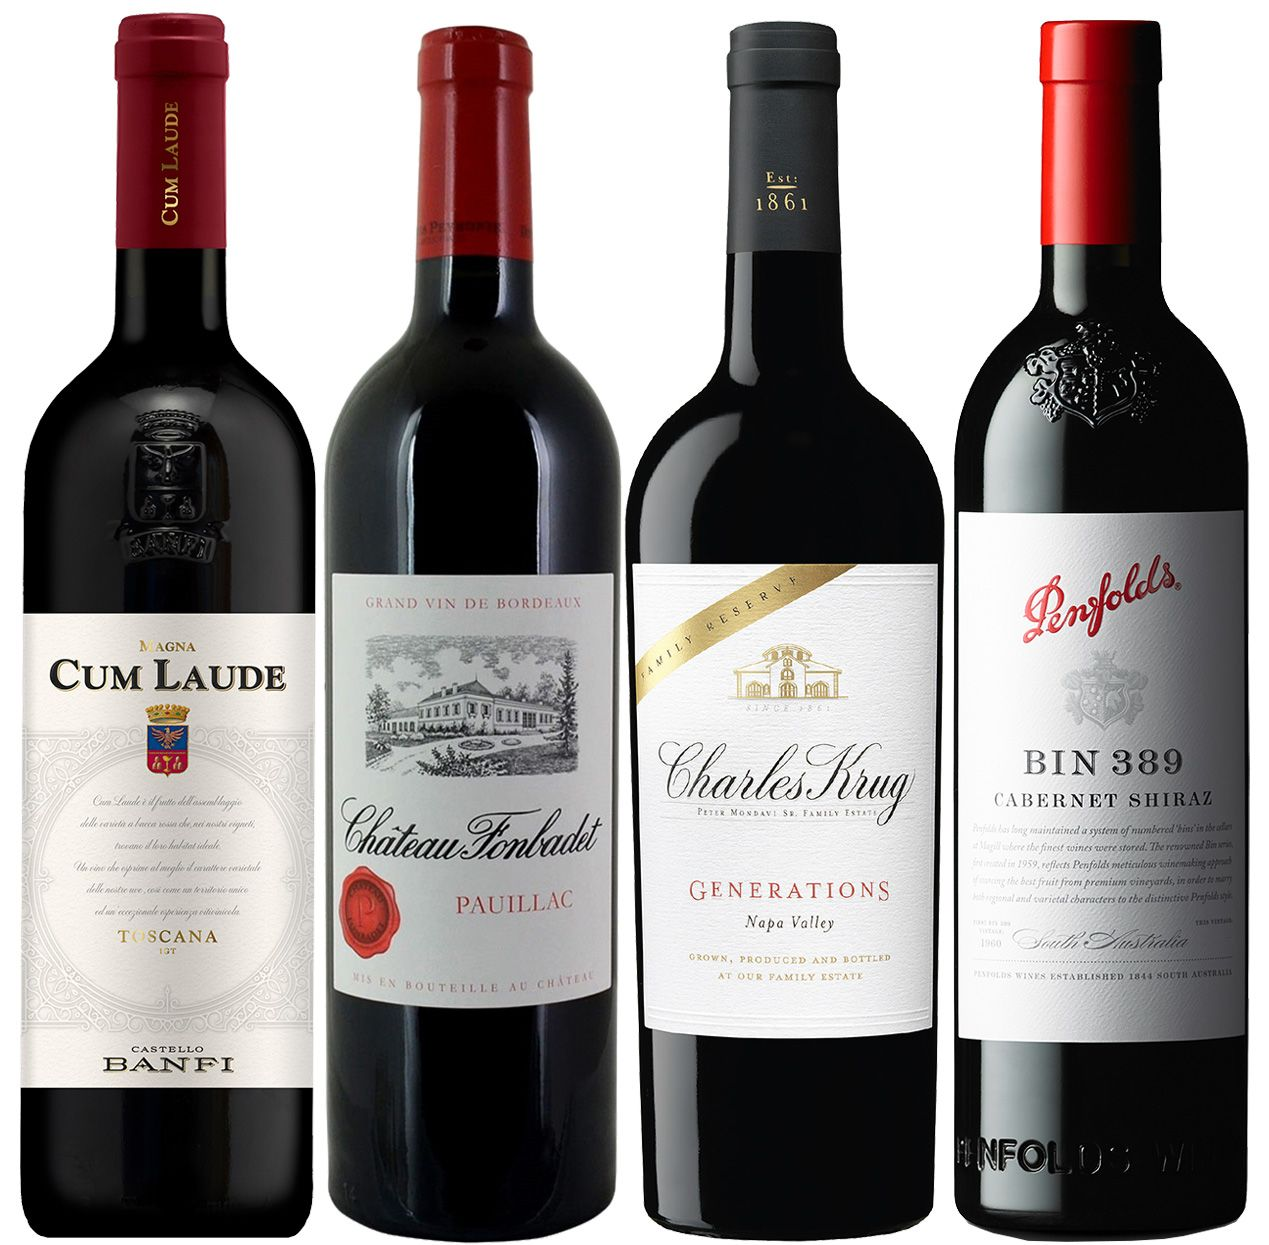 wine.com Kevin Zraly Advanced Tasting of Global Red Blends  Gift Product Image